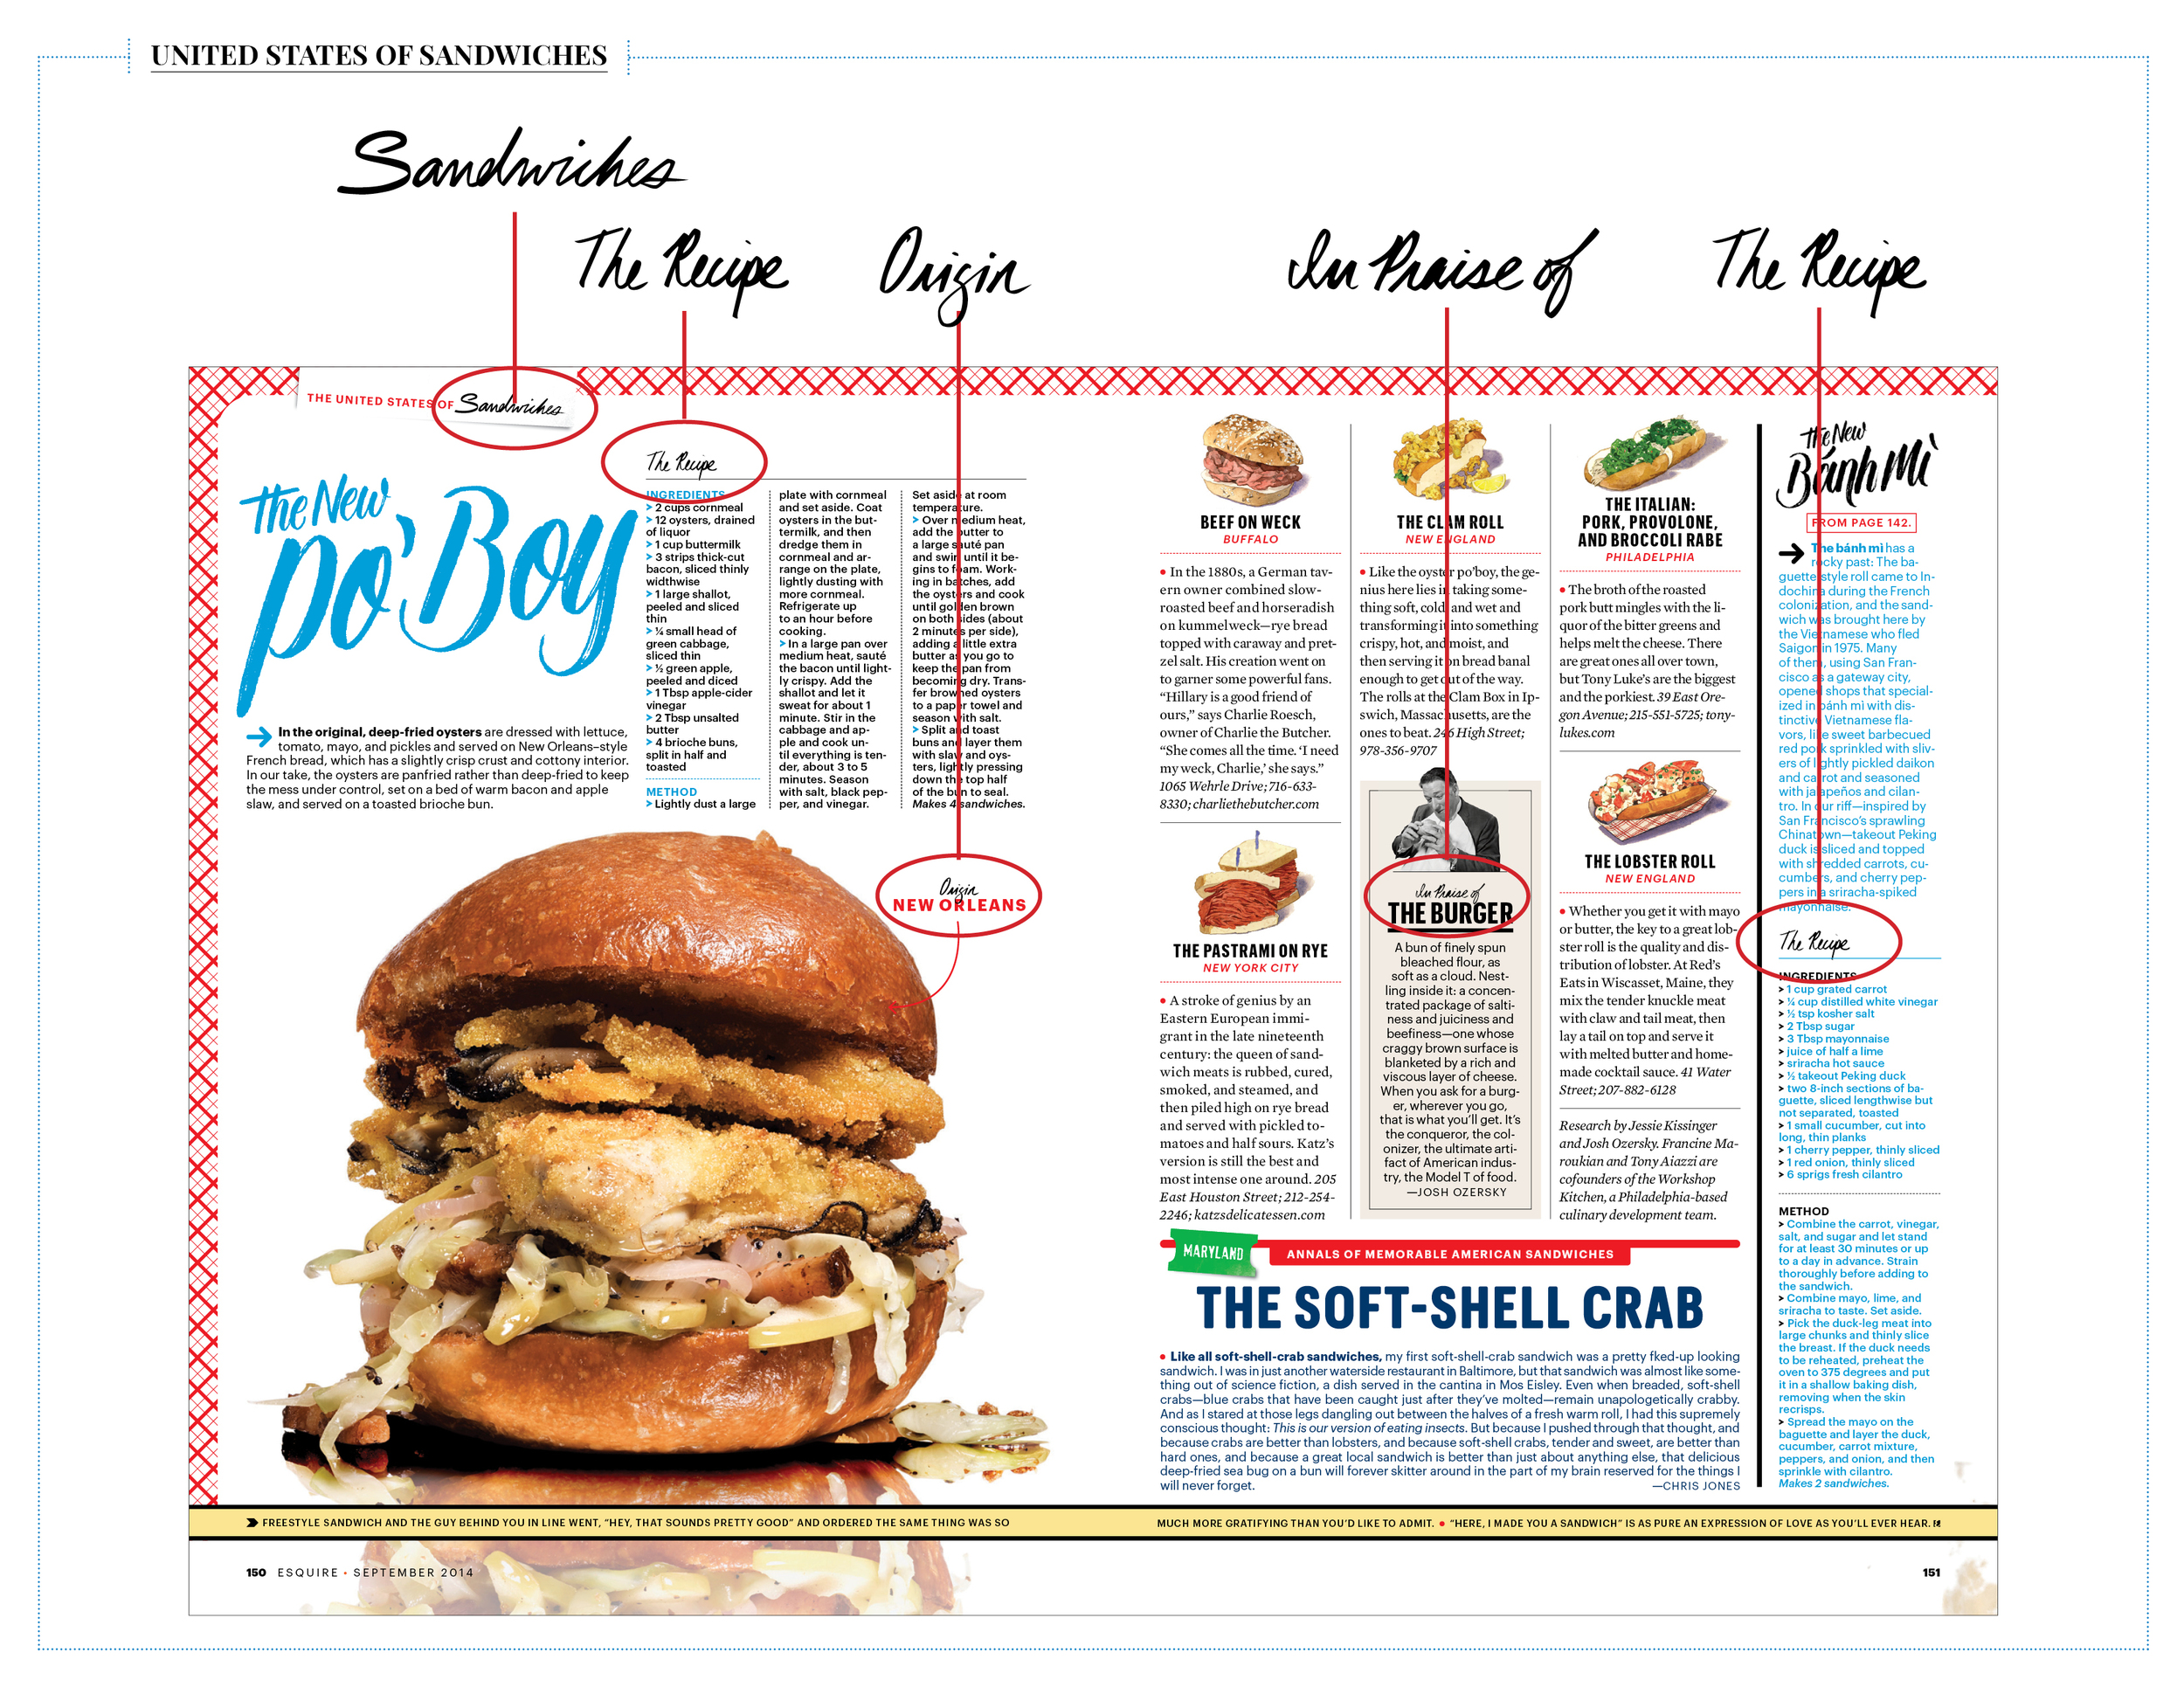 The September Issue of Esquire hada feature calledThe United States of Sandwiches and I was asked to create brush letteredspot illustrations for different sections of that feature.